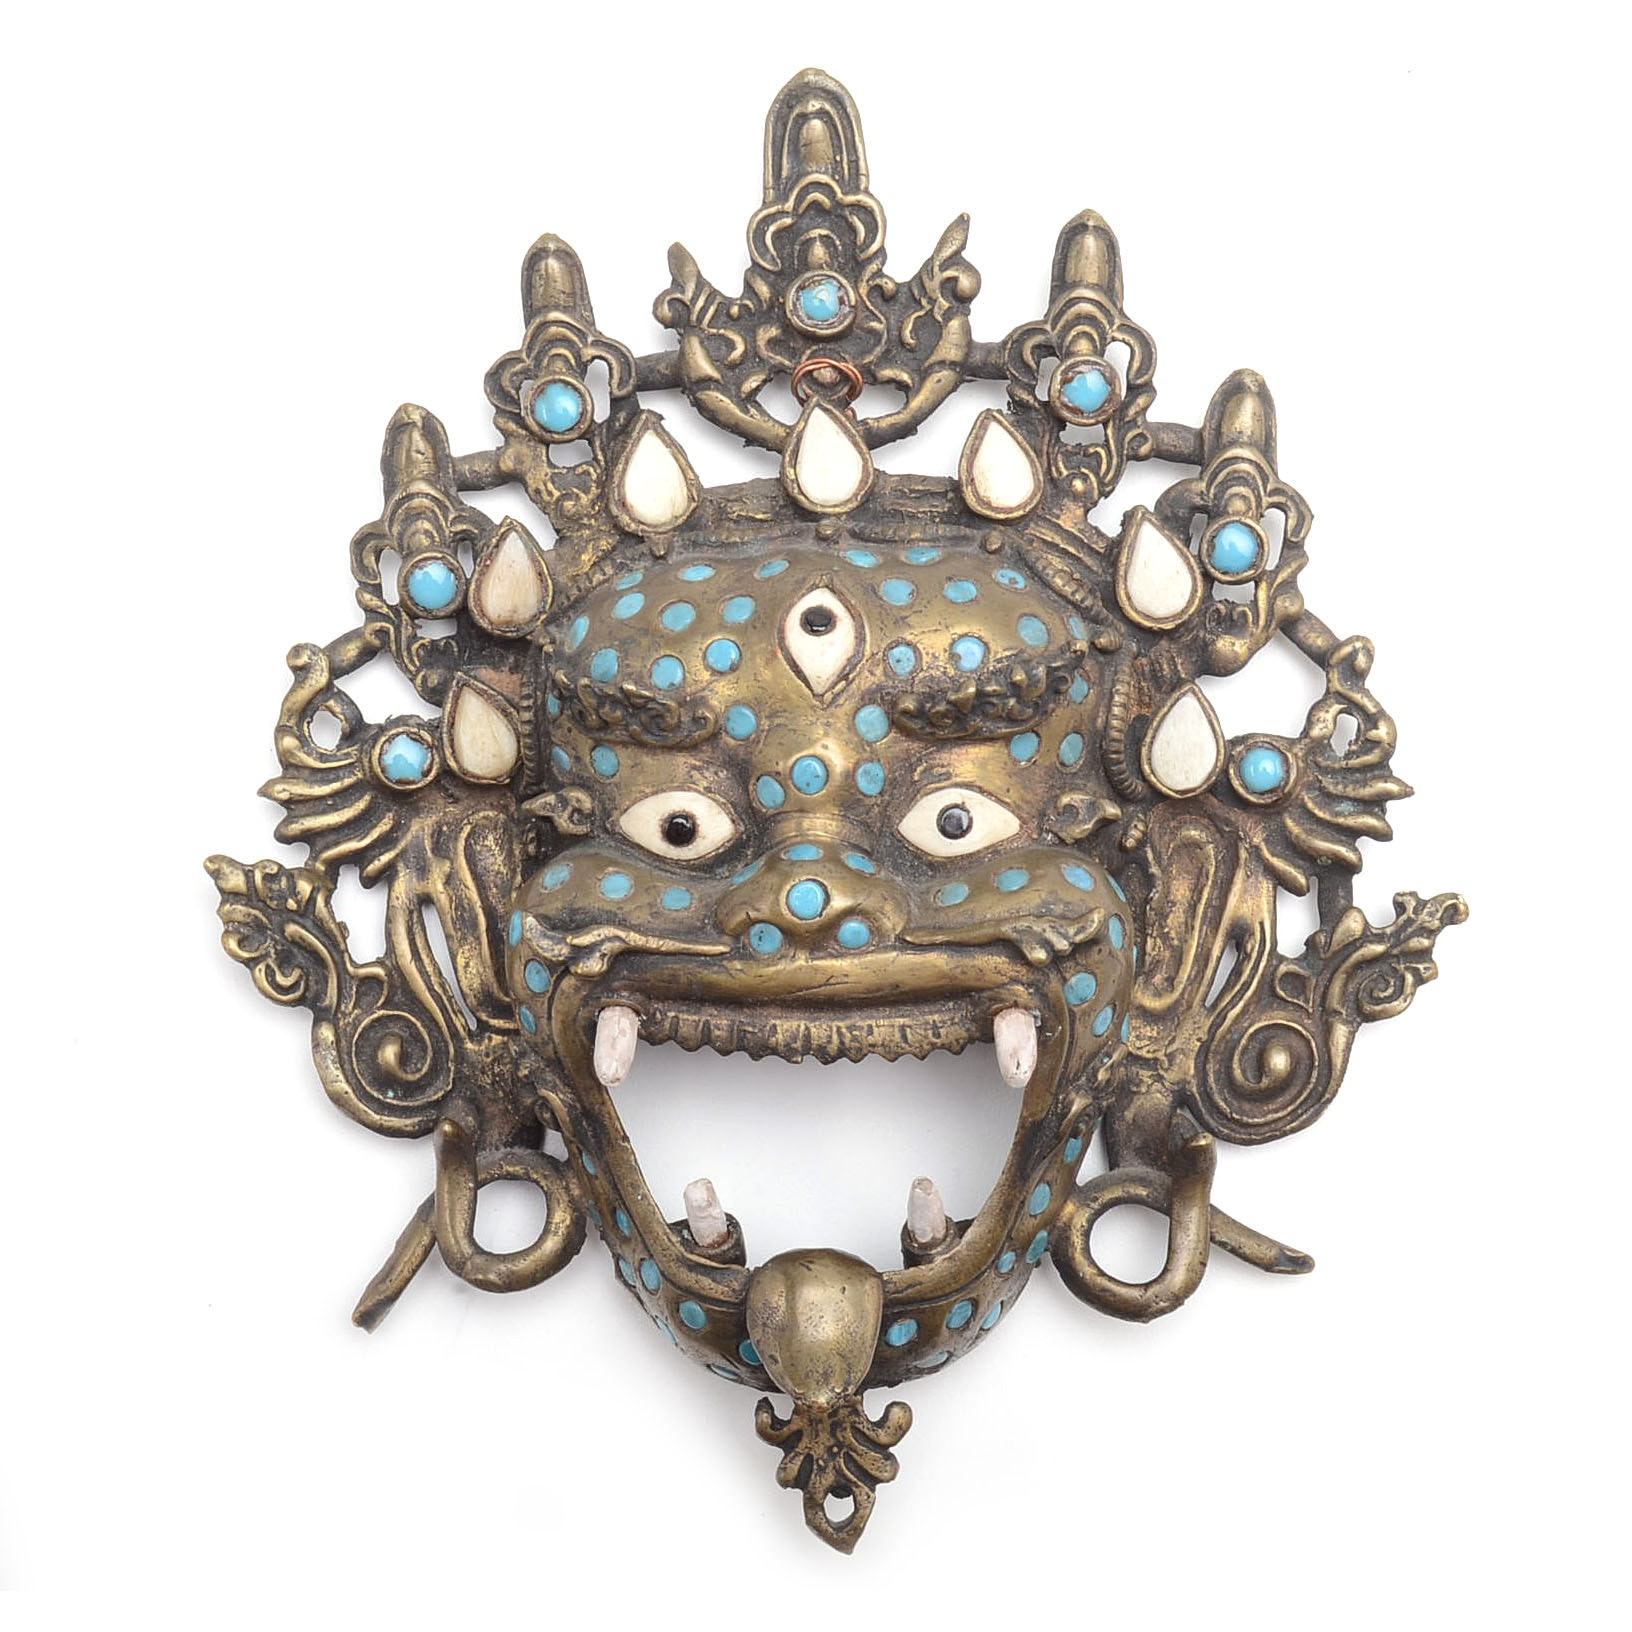 Vintage Tibetan Style Three-Eyed Mask